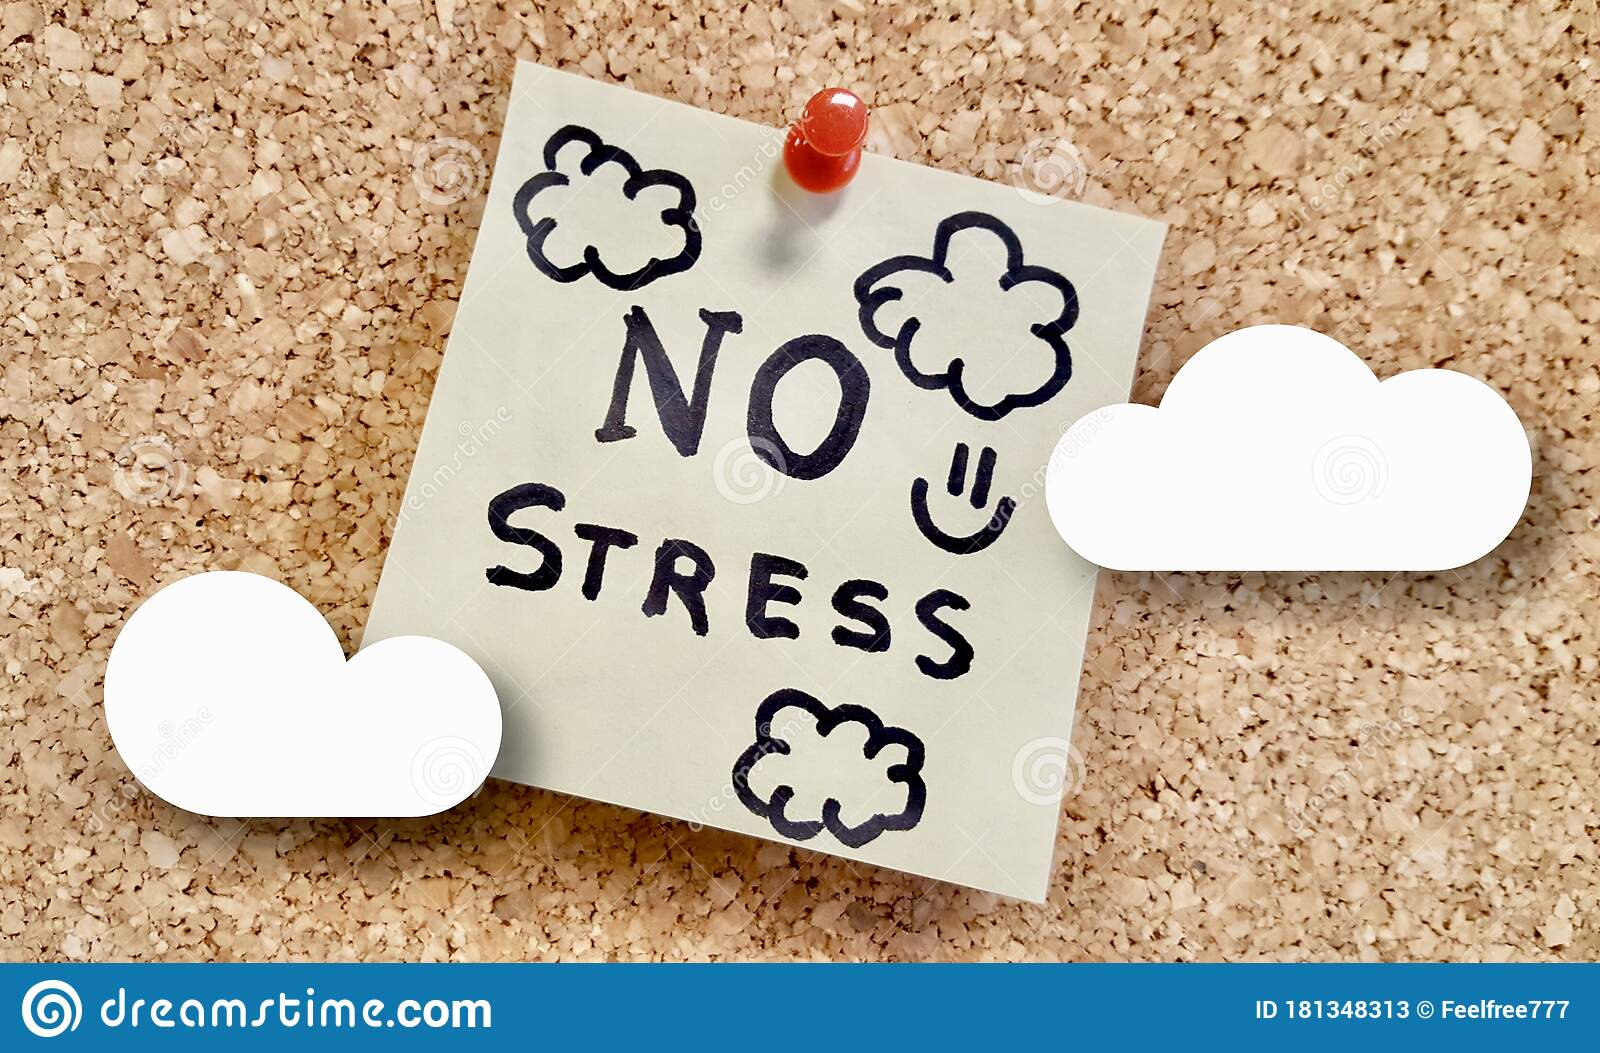 Motivation Quotes No Stress Corporative Business Concep Artwork Stock Image Image Of Strong Perfectly 181348313